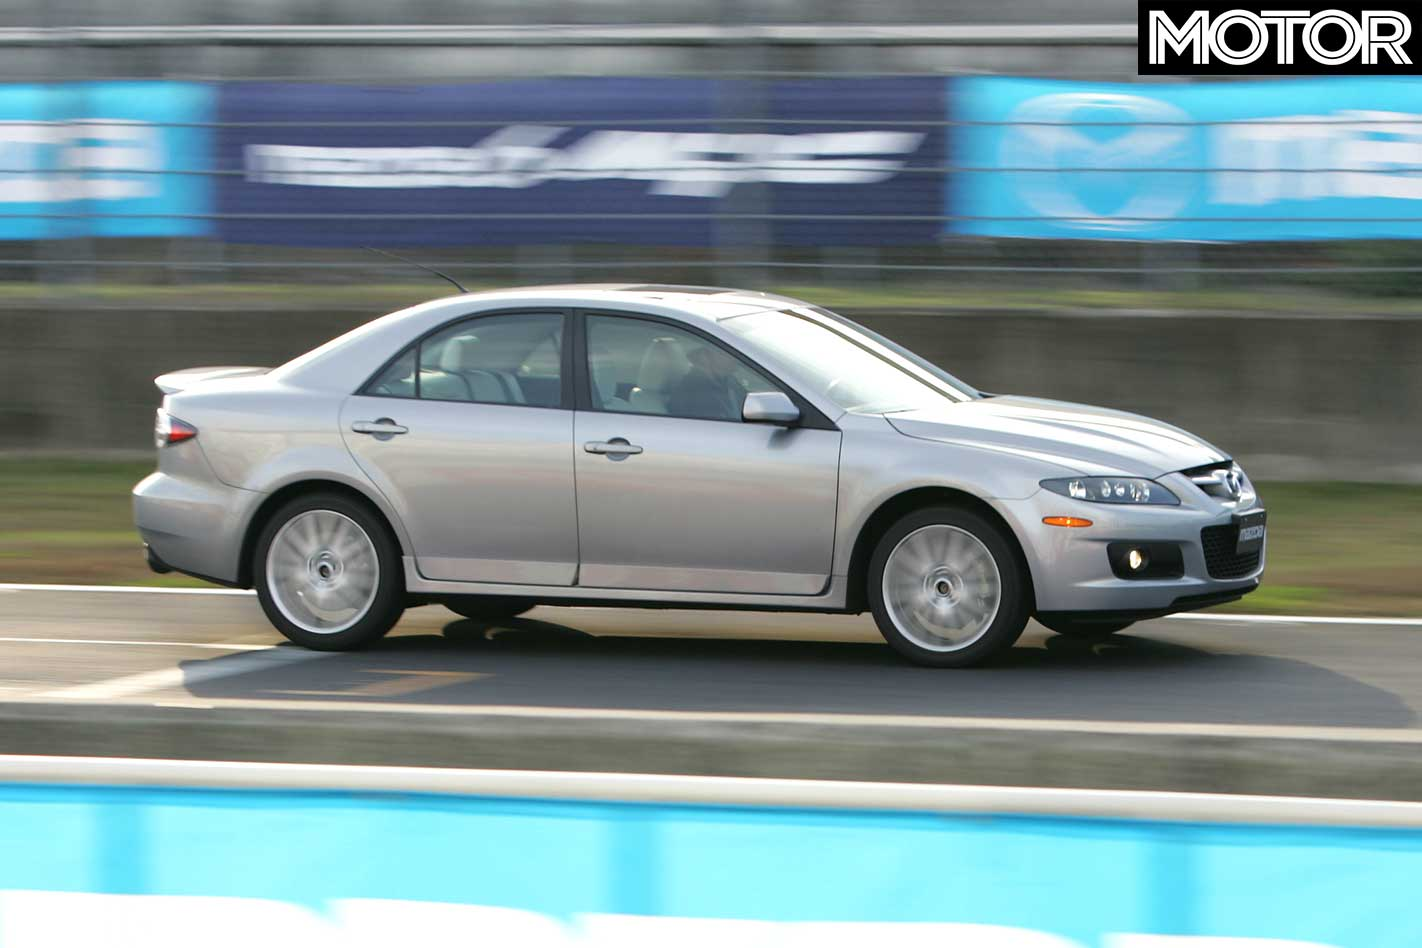 2005 Mazda 6 MPS review: classic MOTOR